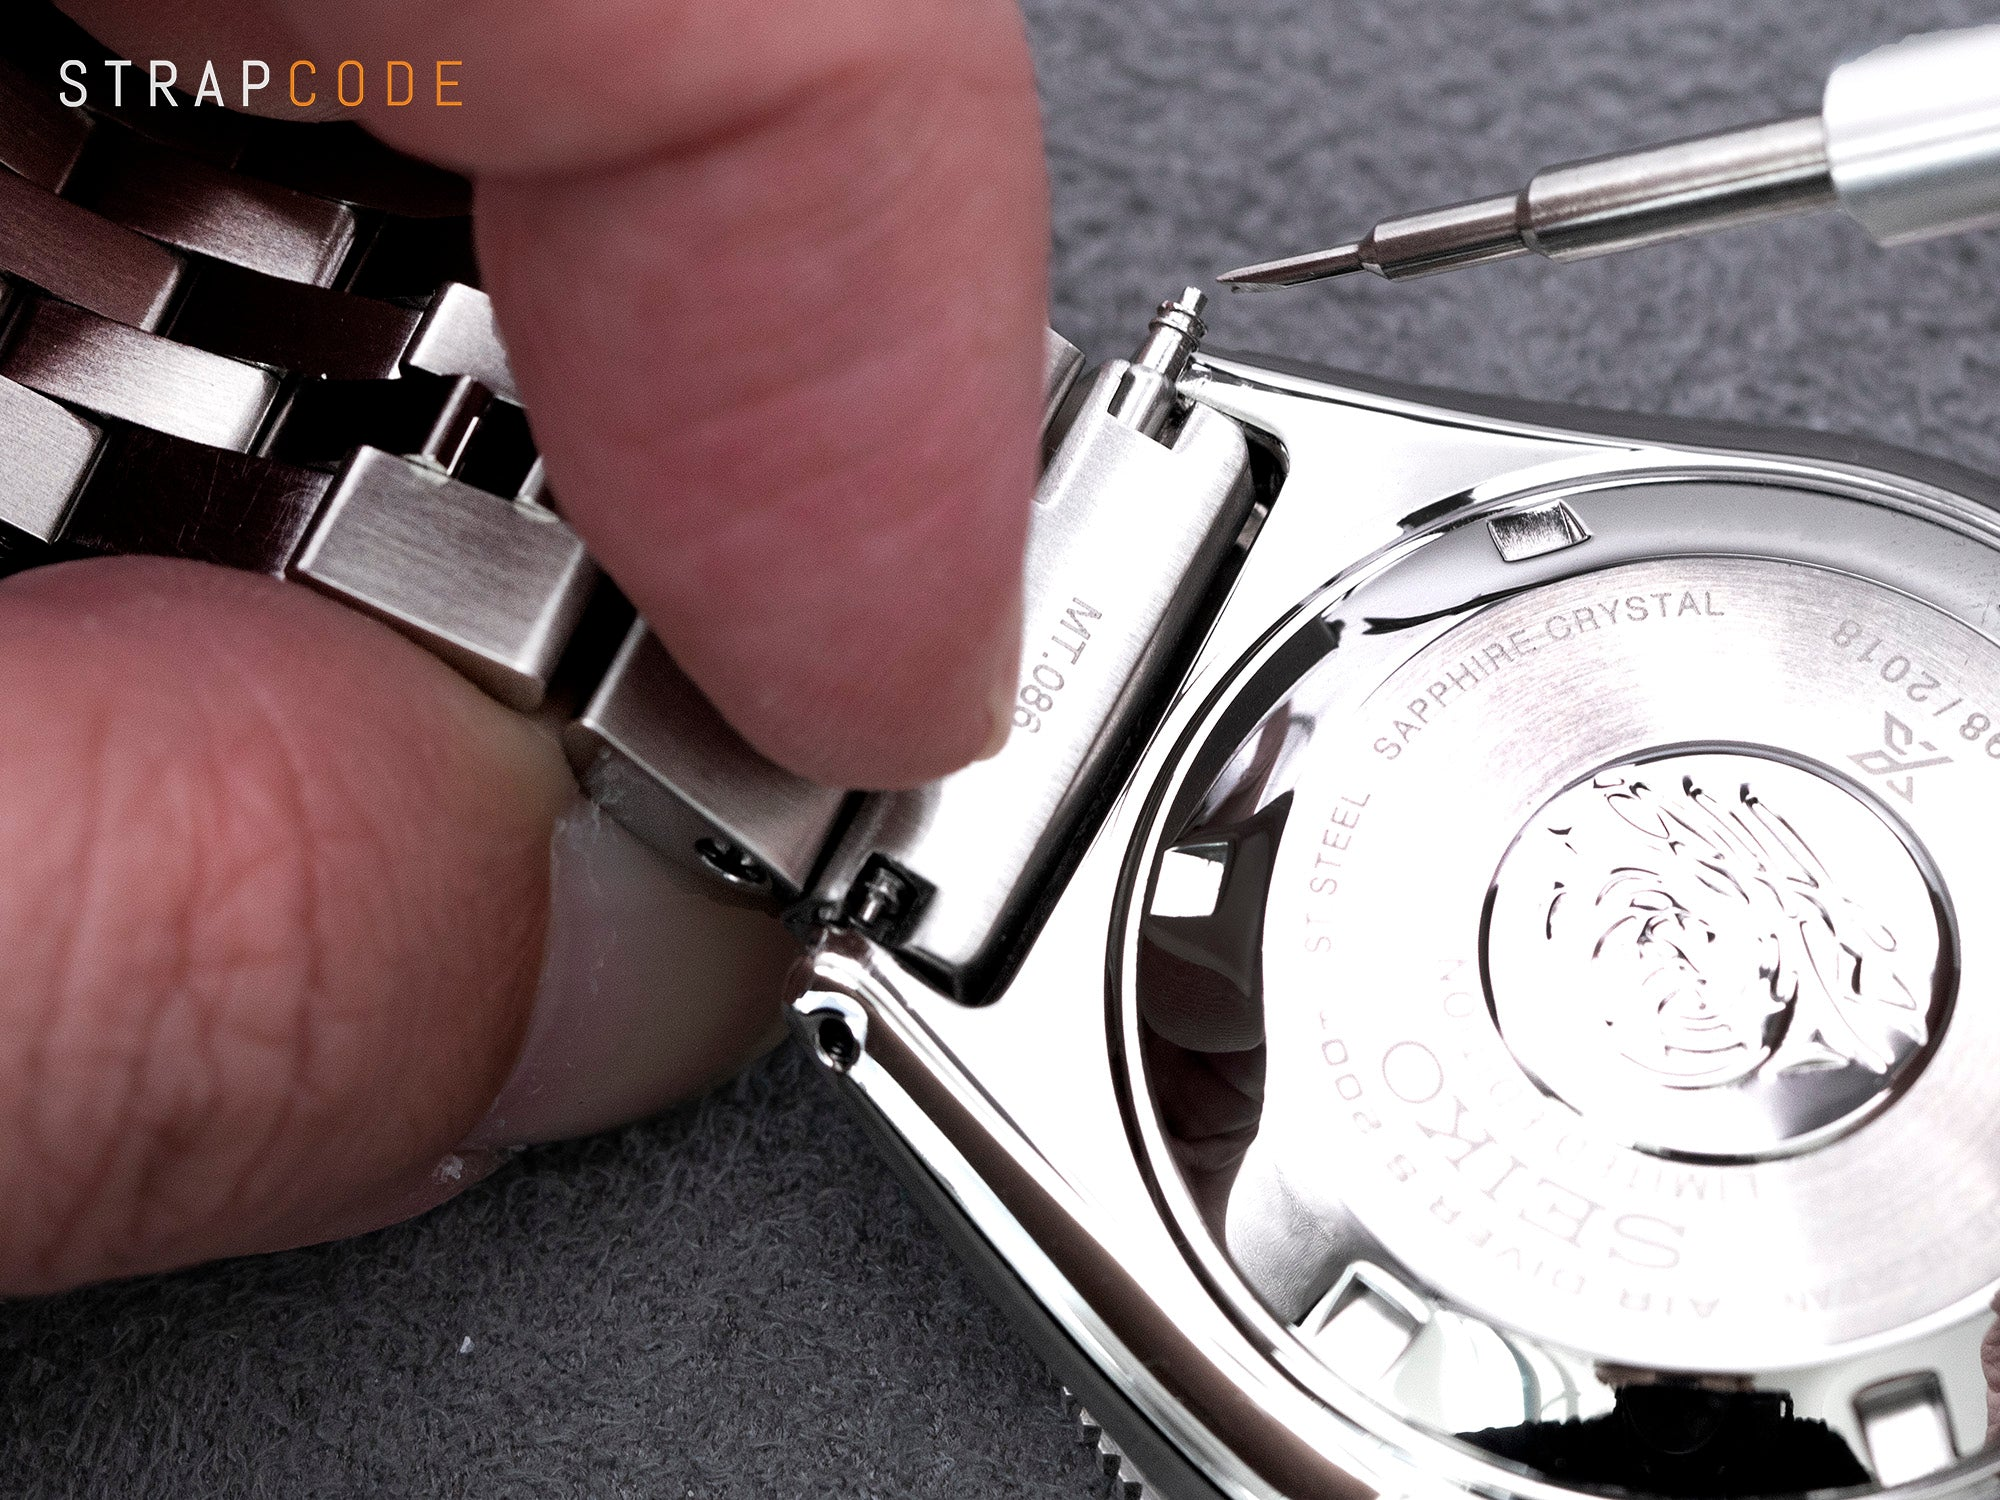 Changing watch band - The spring bar is clear of the lug of the watch case